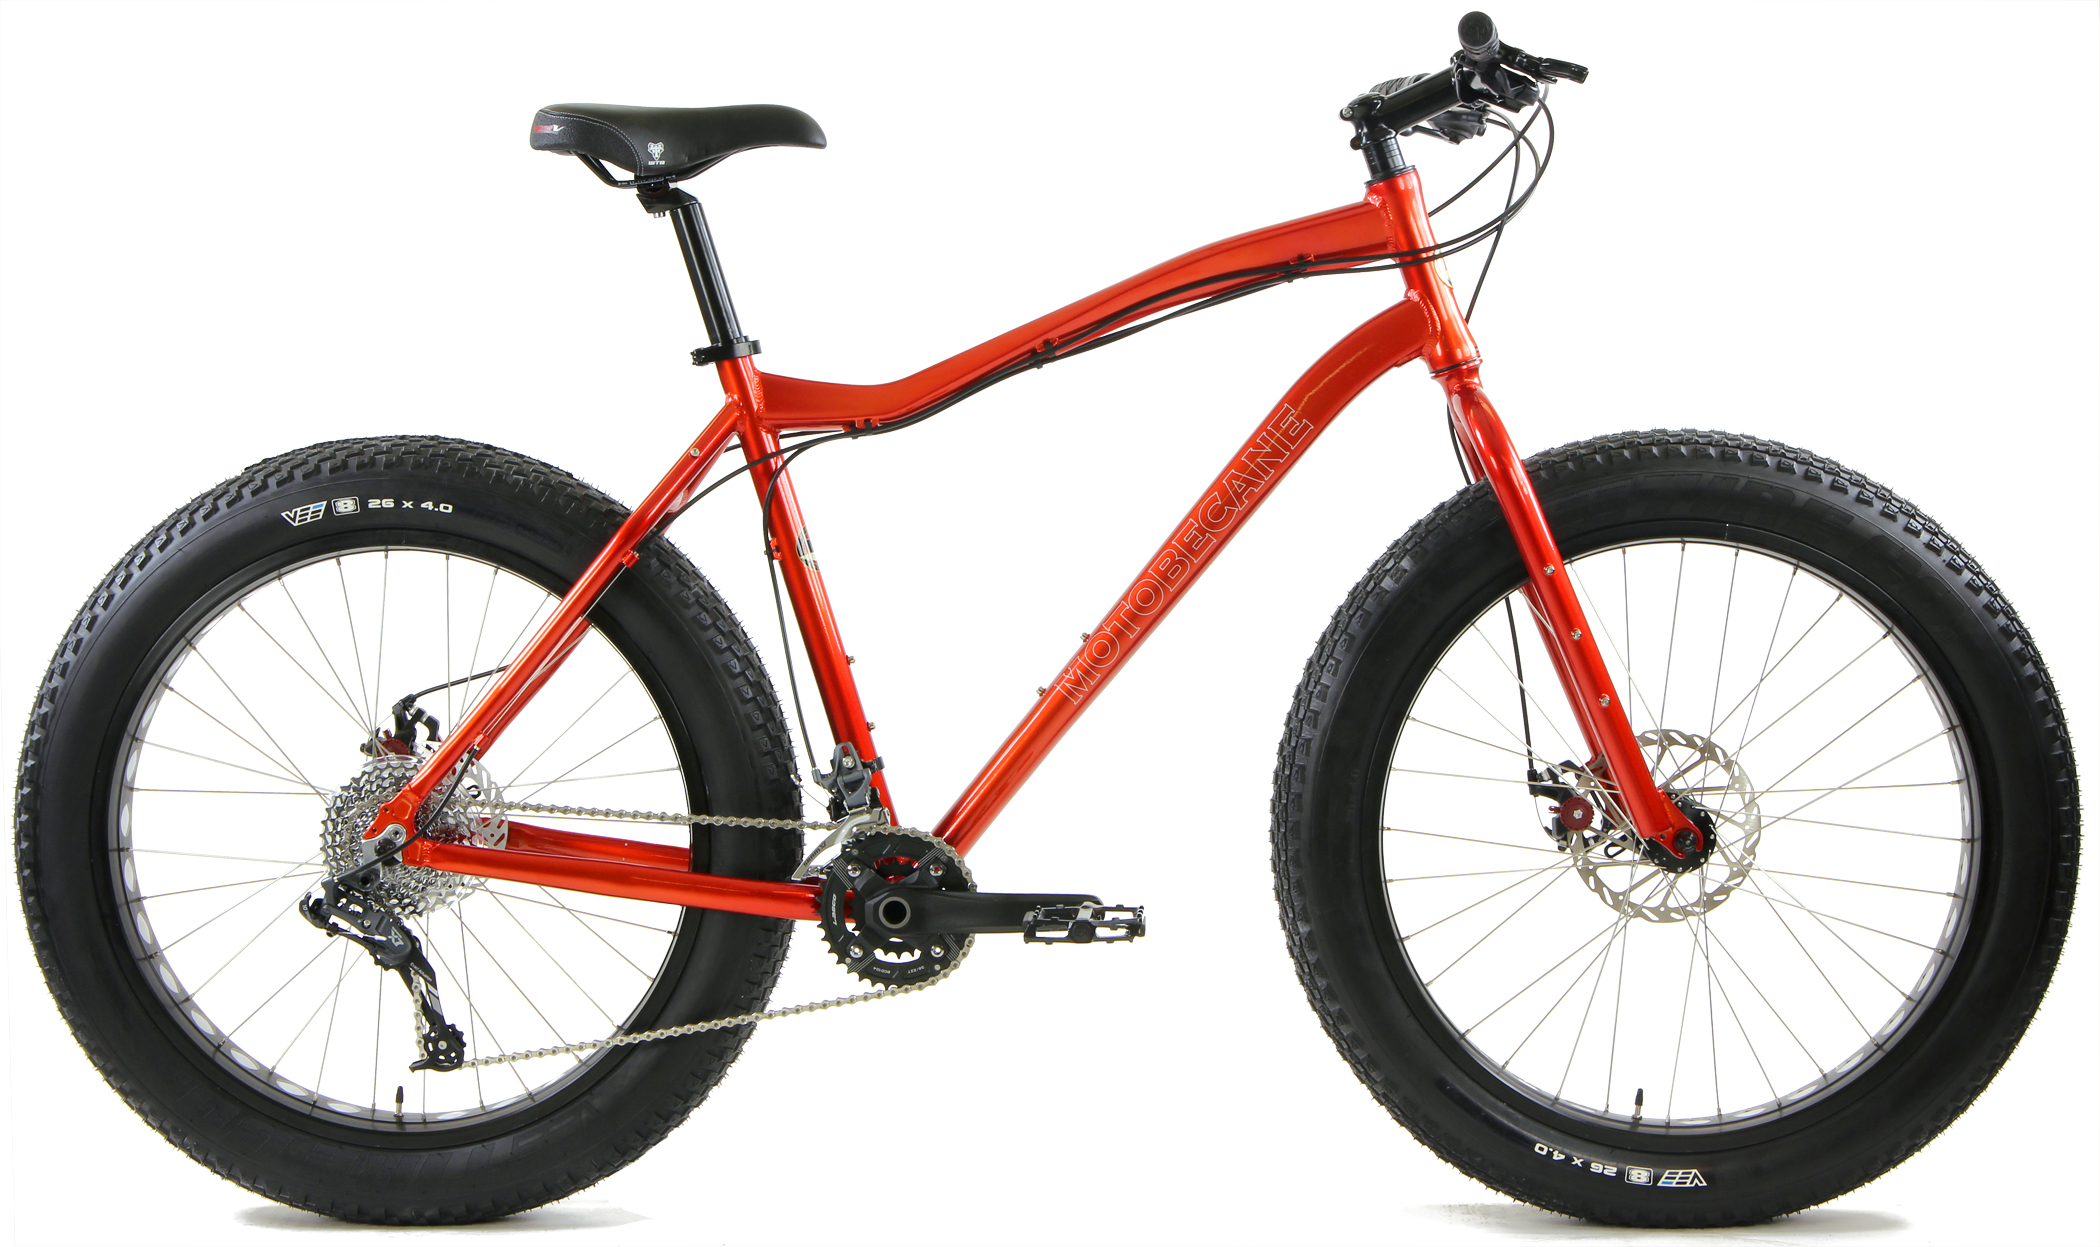 BORIS X7 - FAT BIKE w/ AVID DISC BRAKES